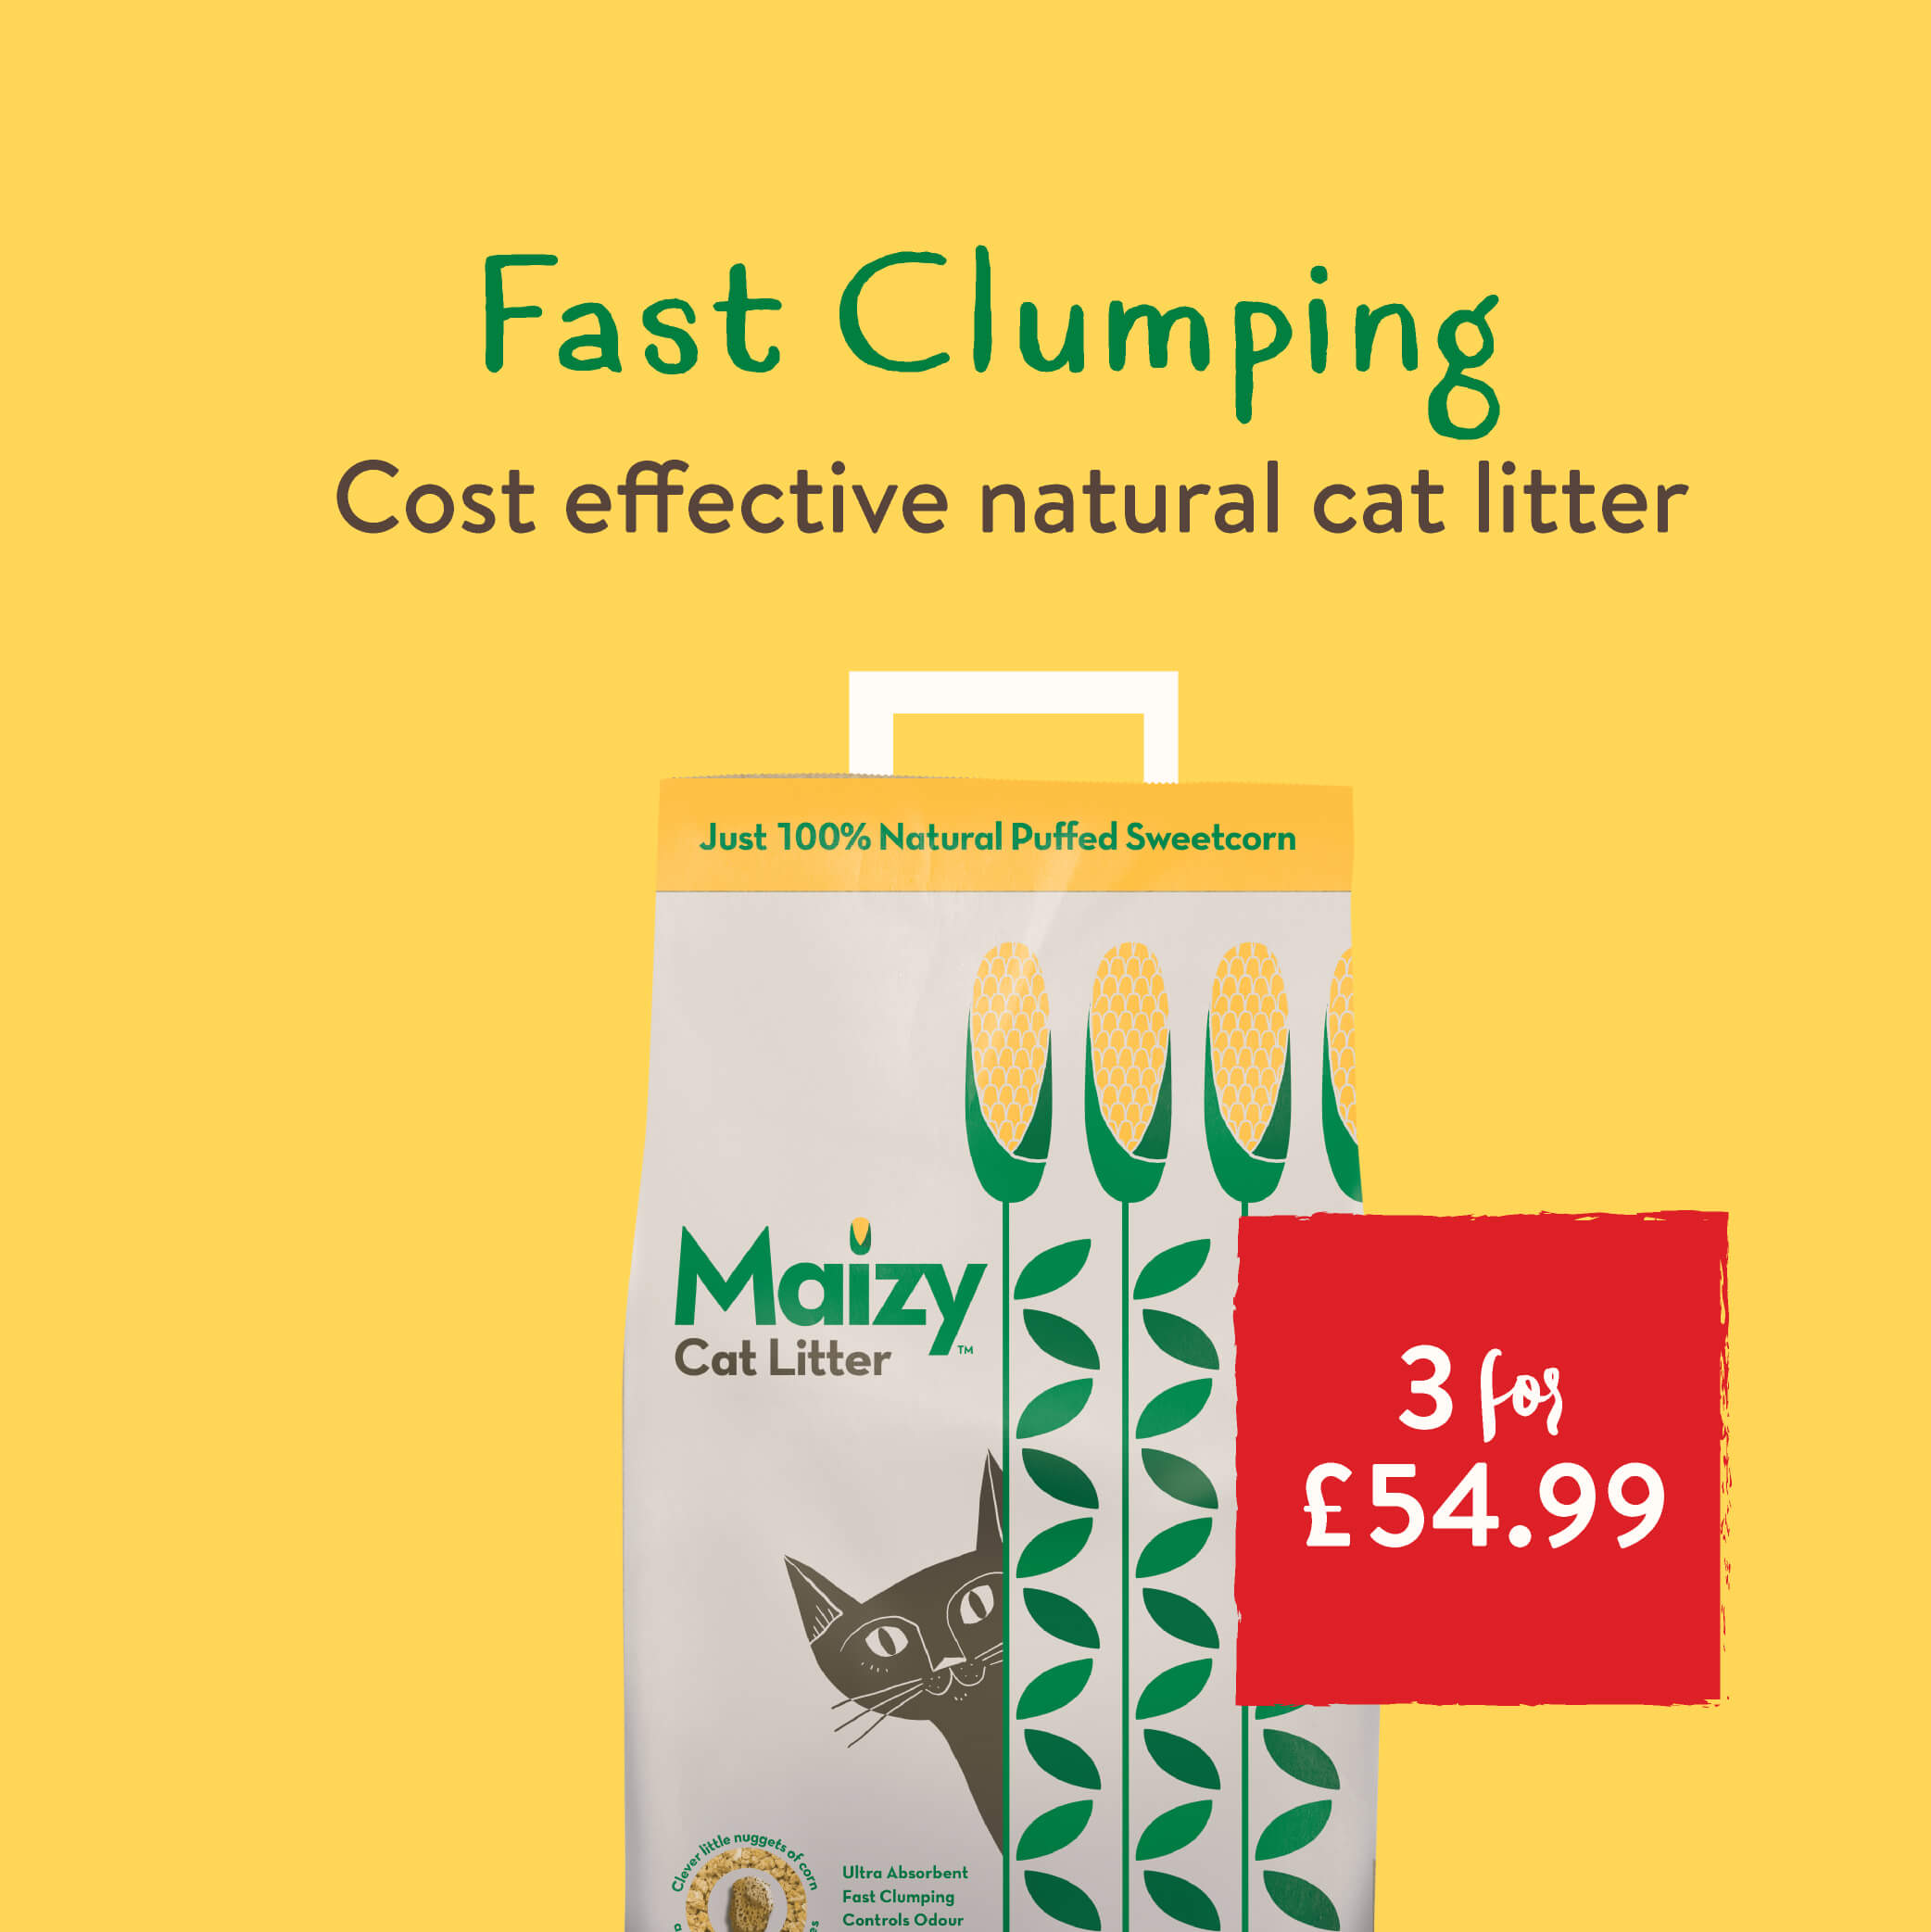 3 for £54.99 with FREE next day delivery on Maizy Cat Litter